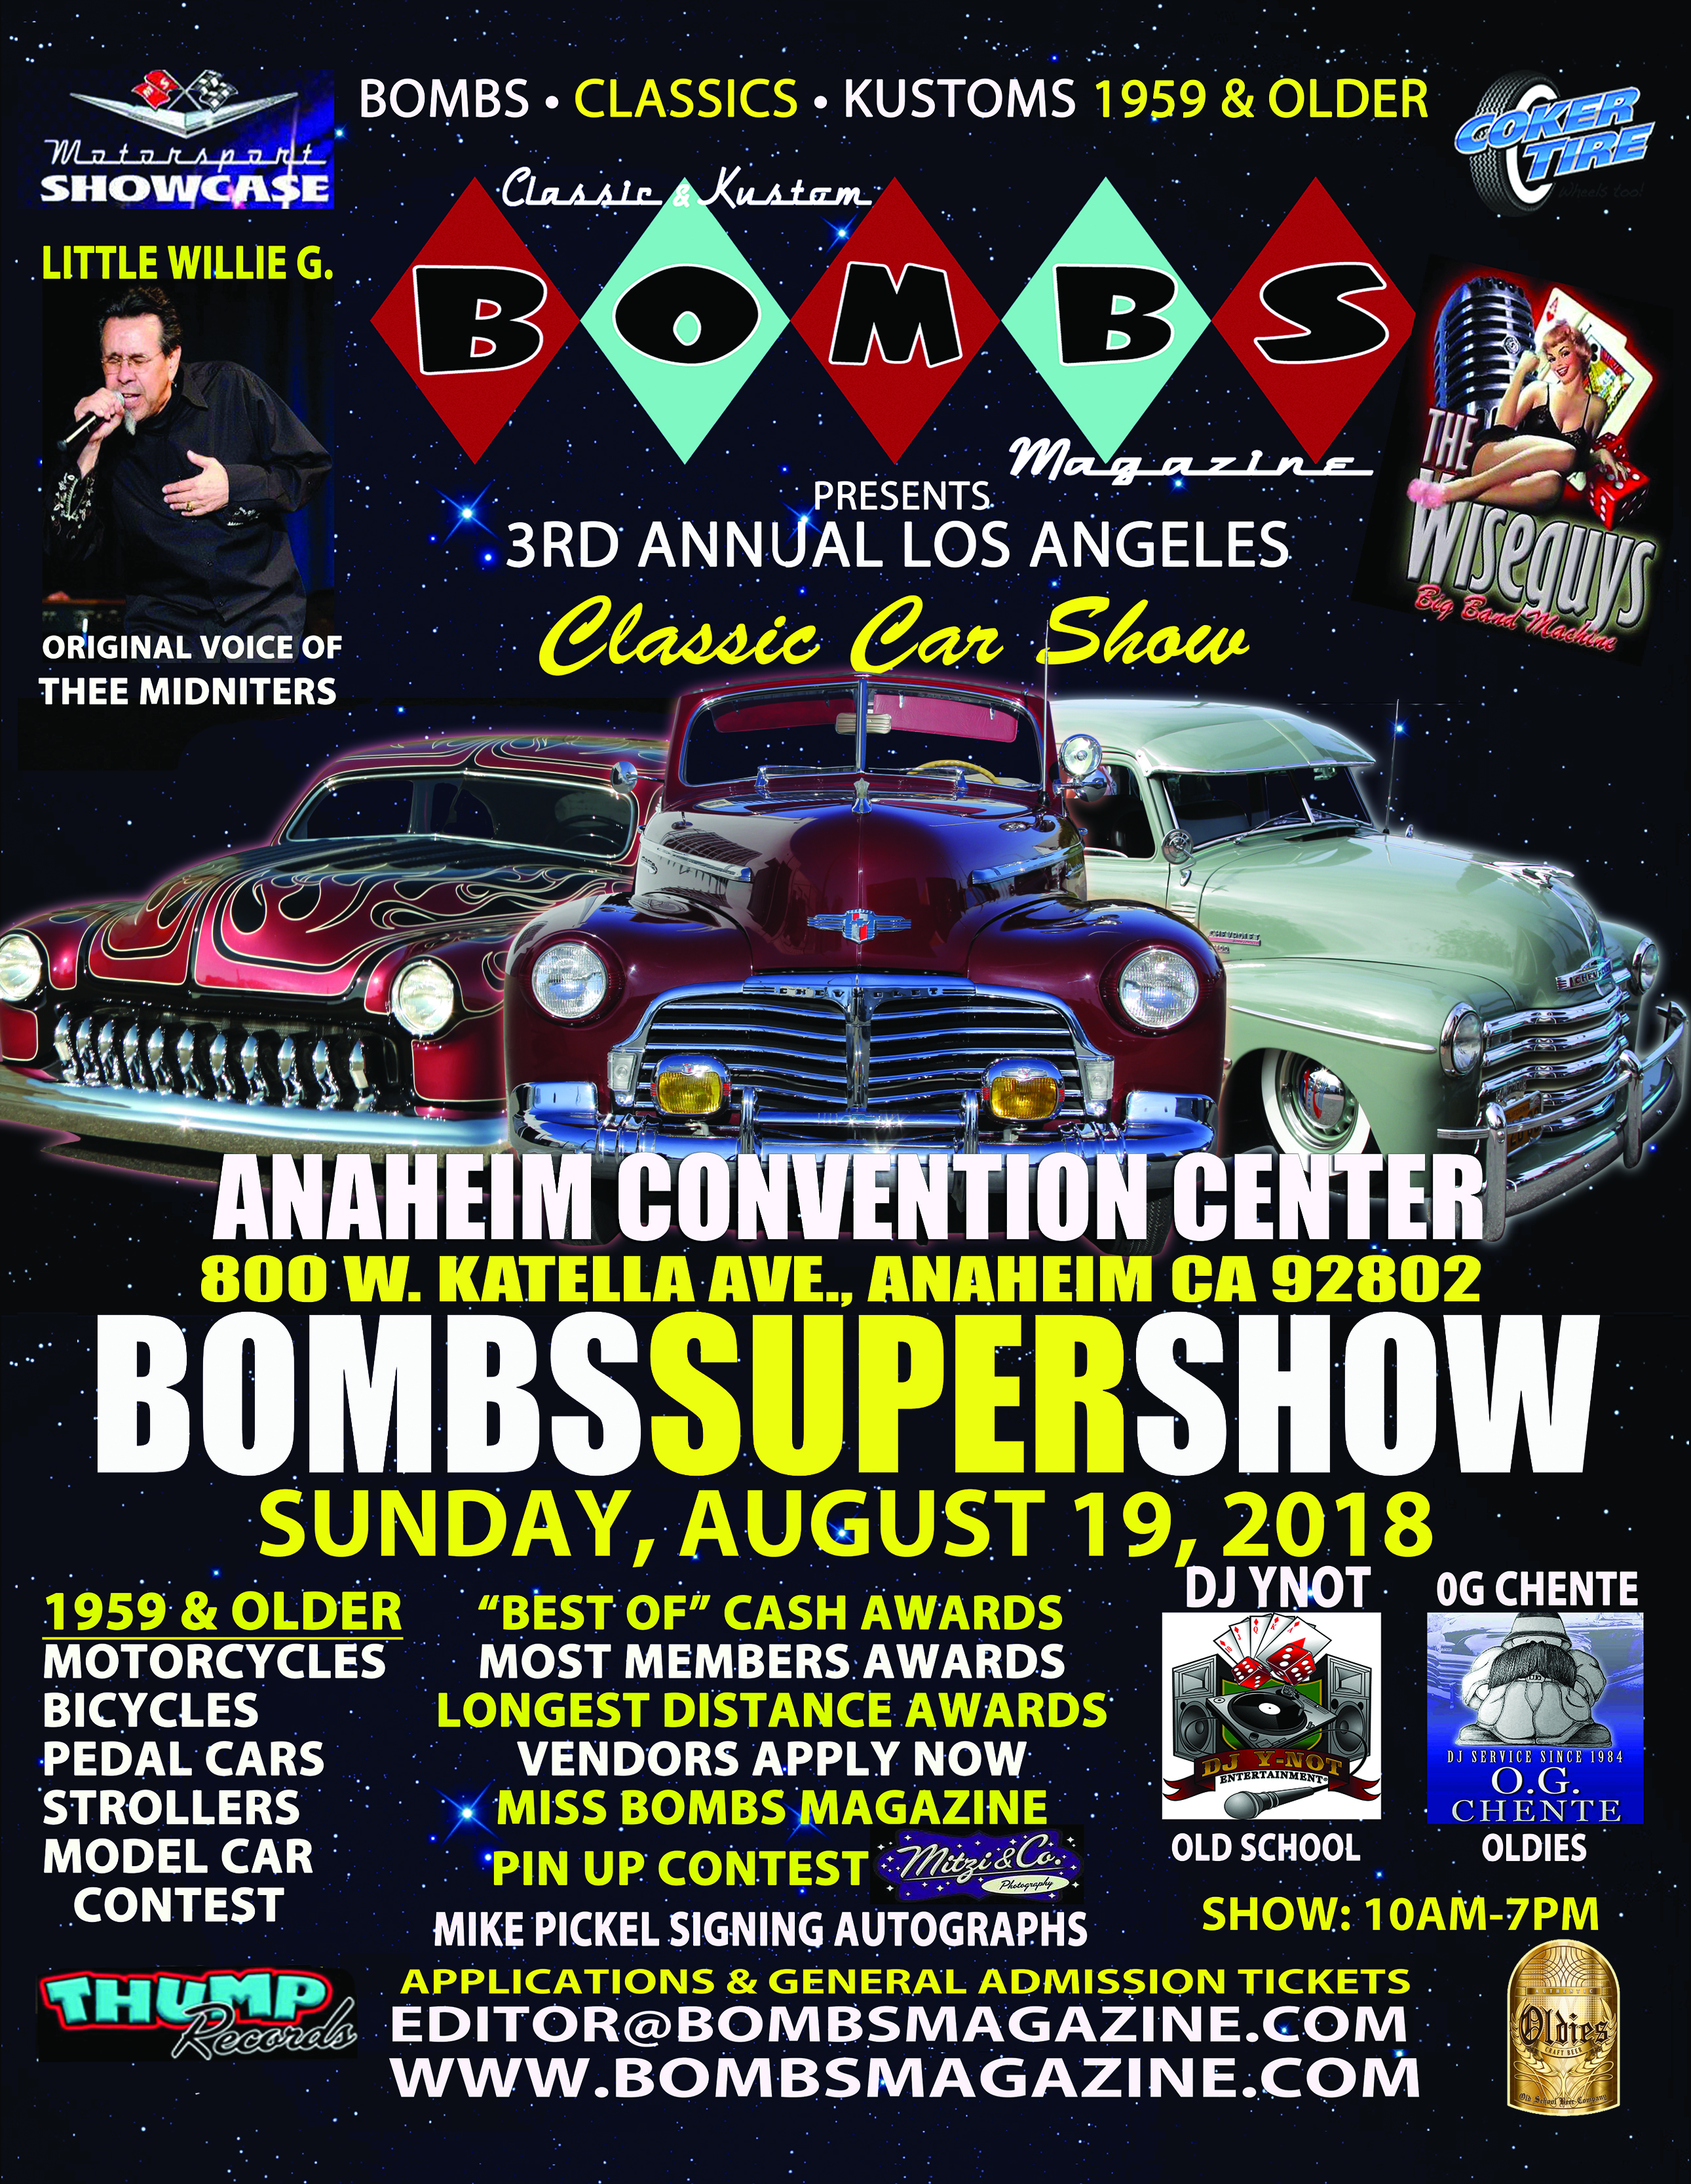 Bombs Super Show Bombs Magazine - Lowrider car show 2018